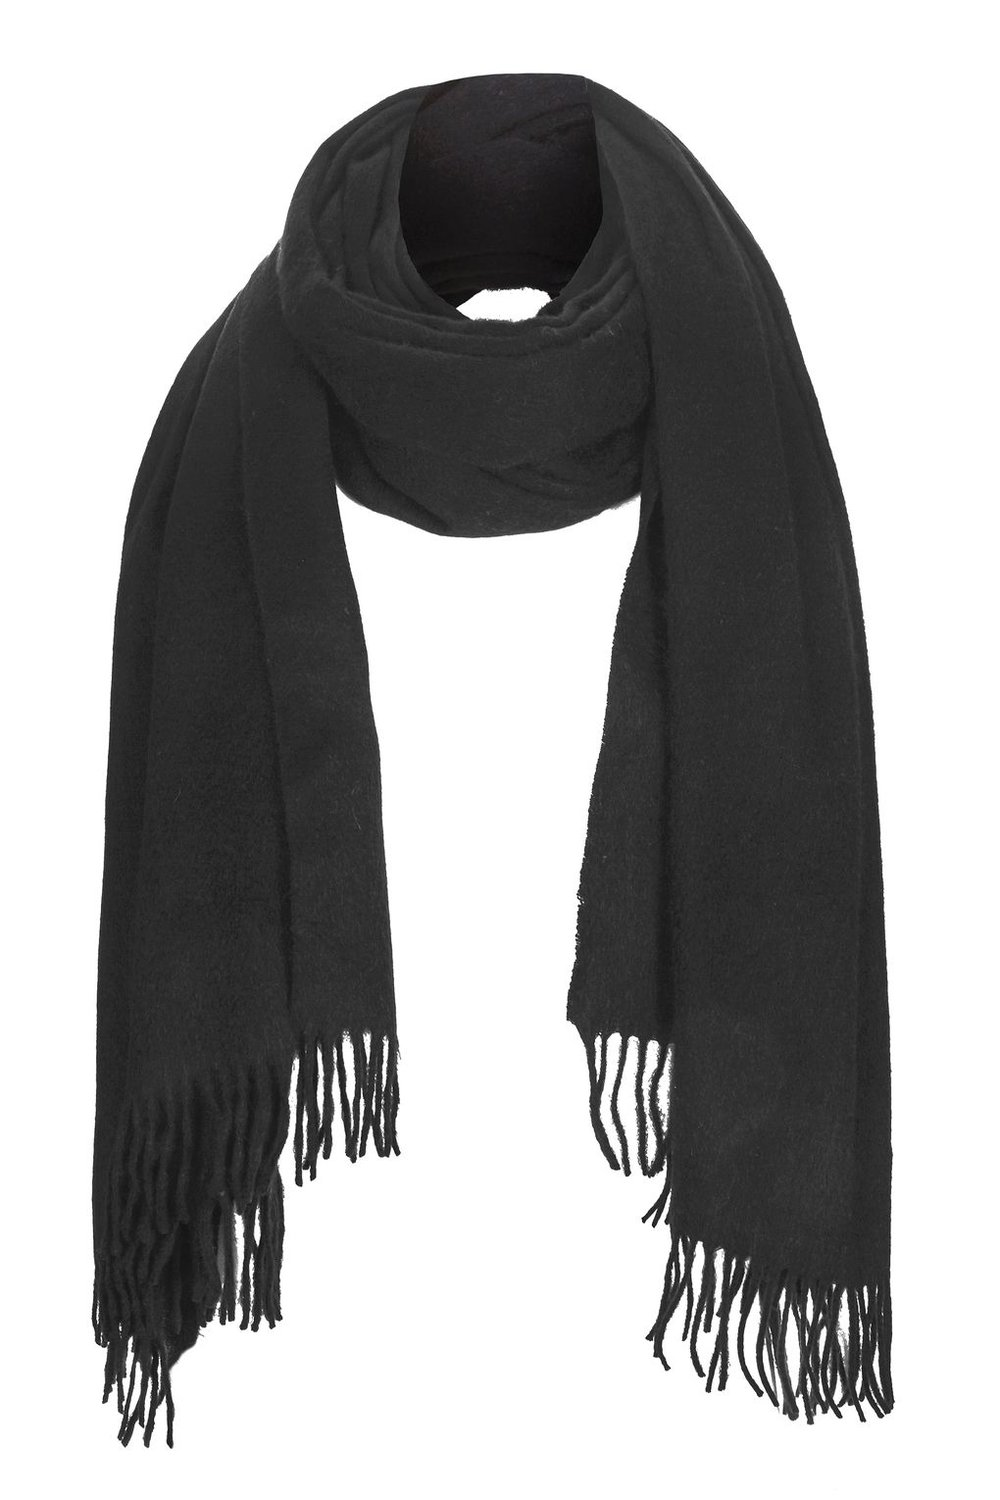 Topshop - Cashmere Scarf